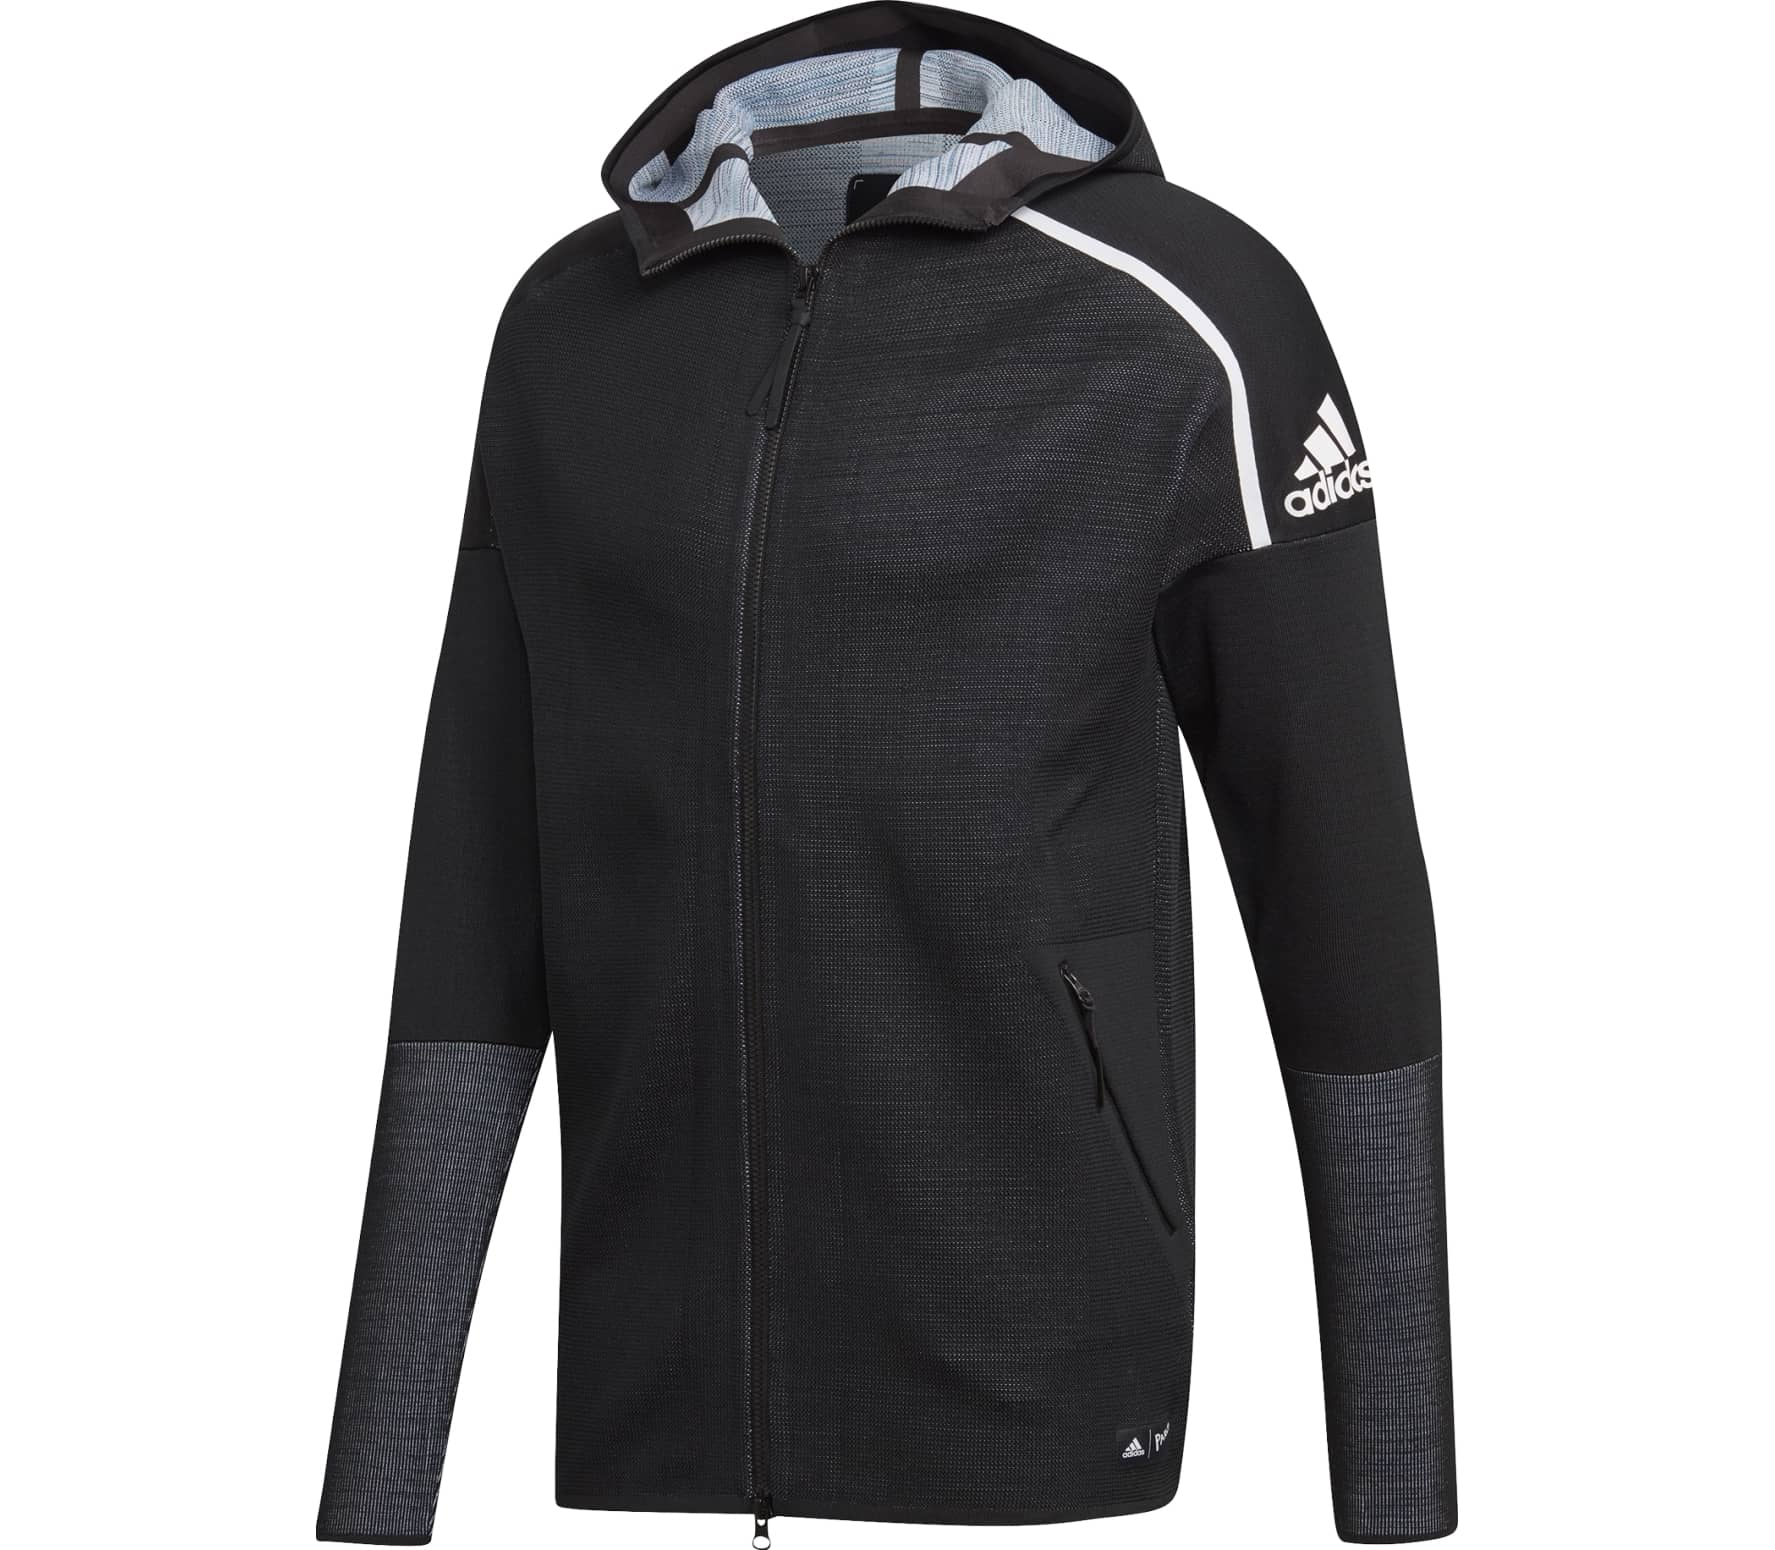 best supplier outlet boutique first look Z.N.E. Hoodie Parley Men